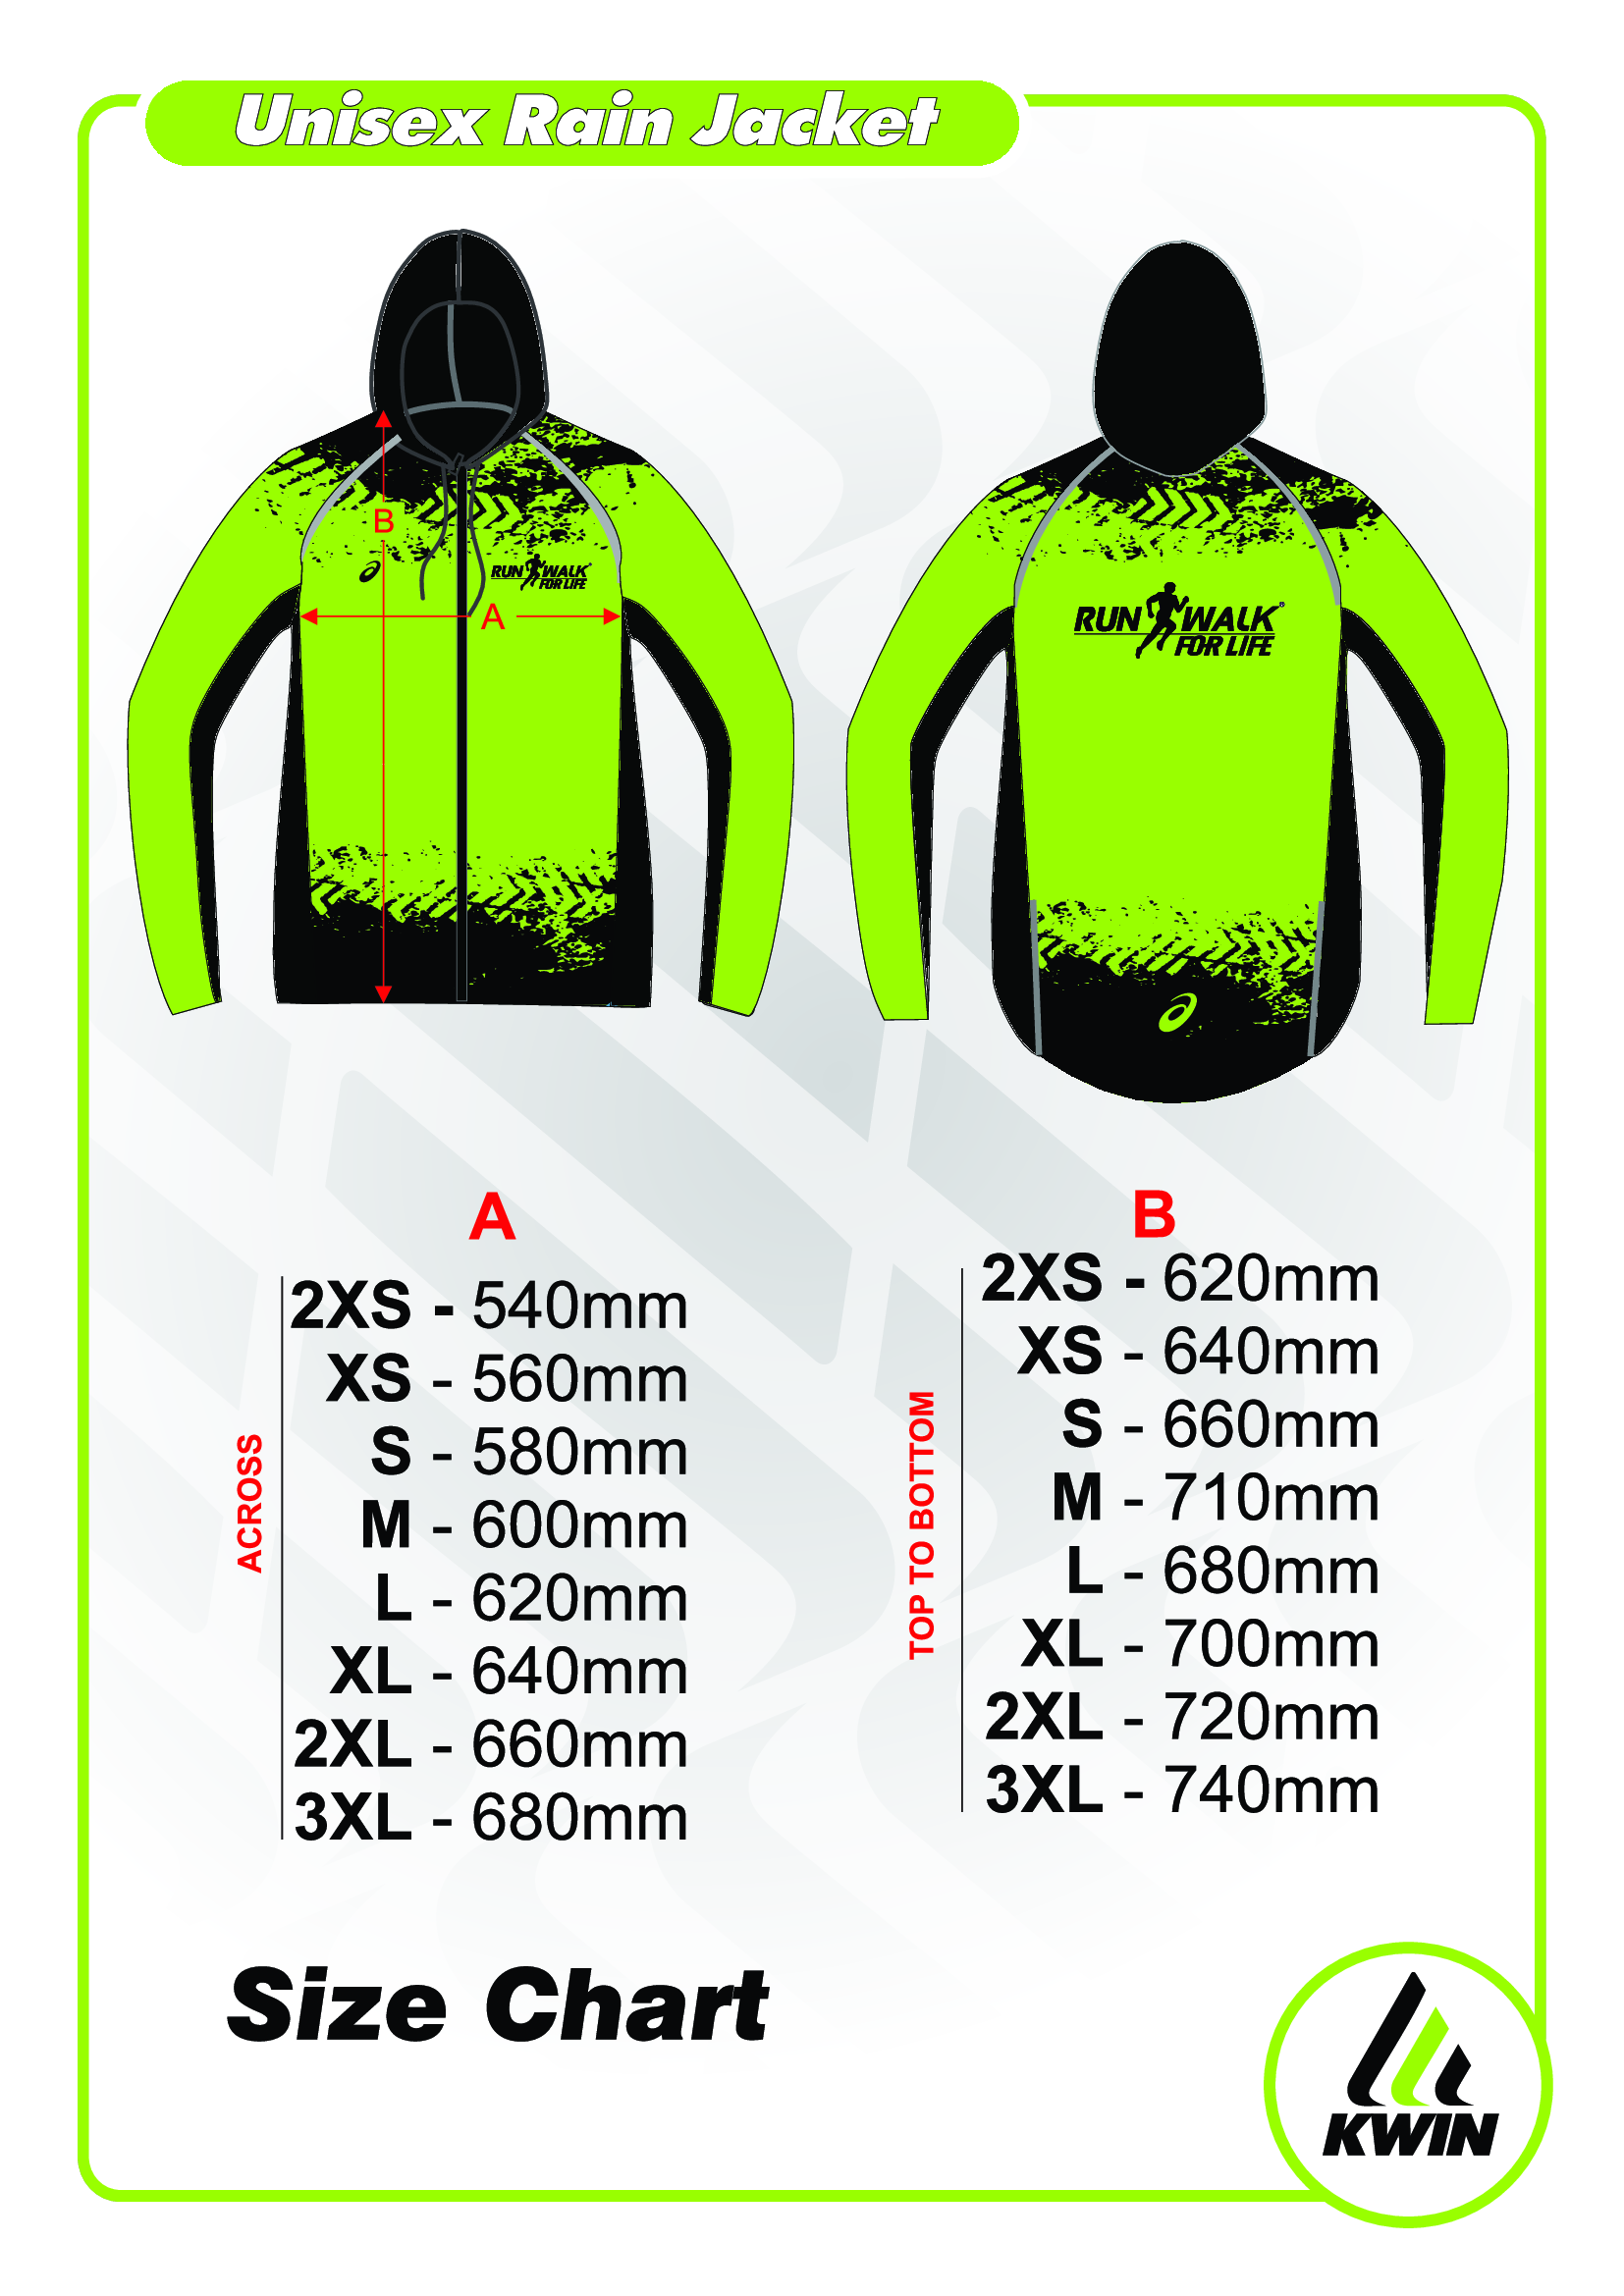 Run Walk For Life Jacket Size Chart